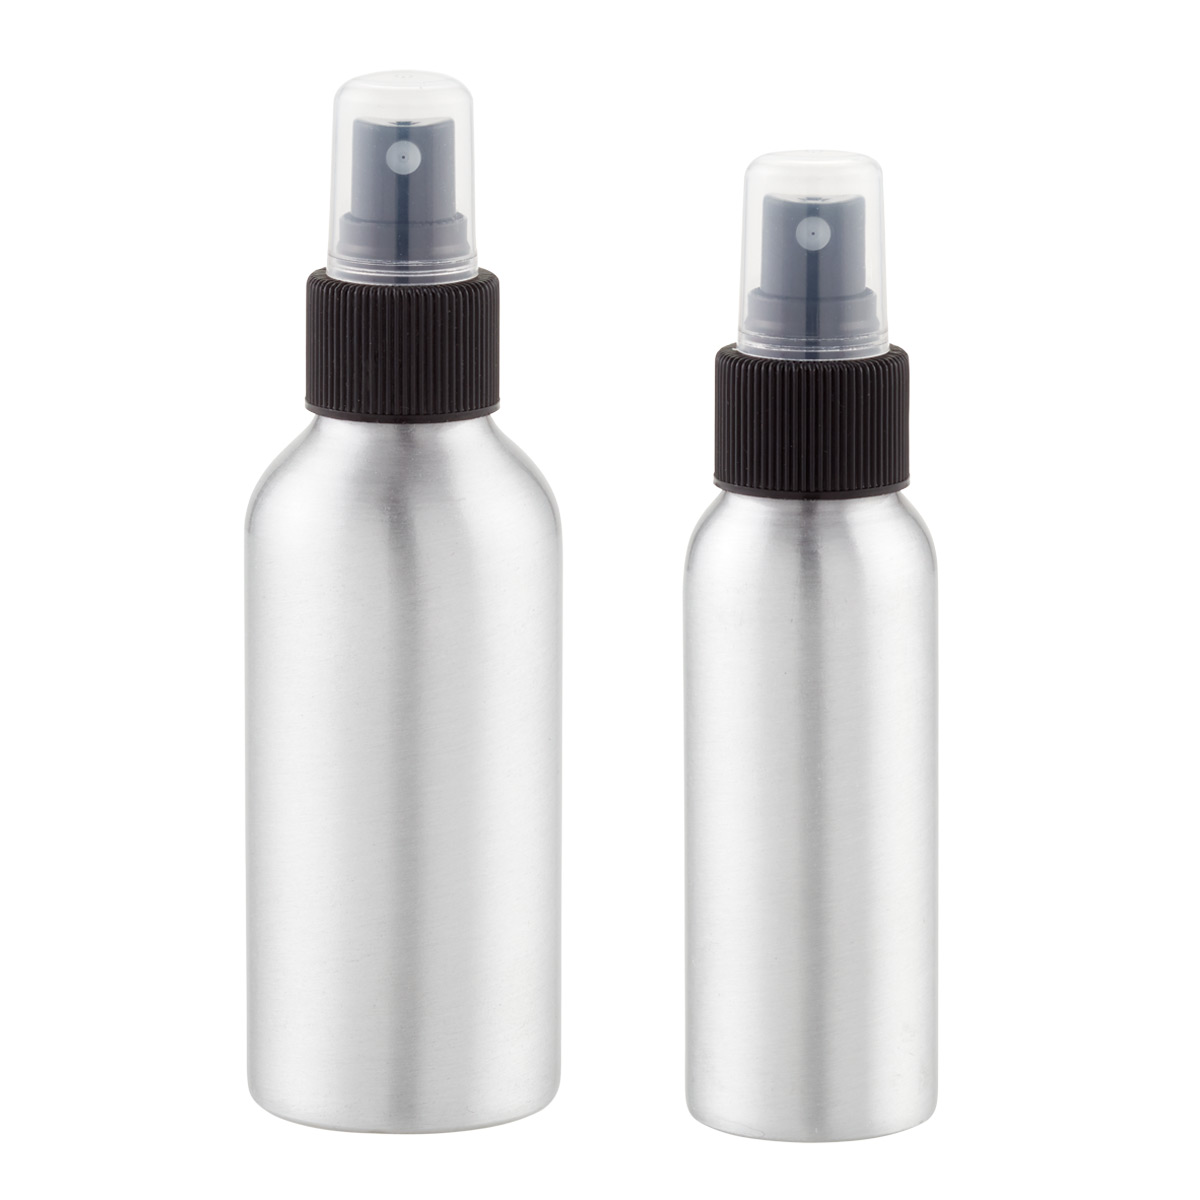 iDesign Aluminum Travel Mister Bottles